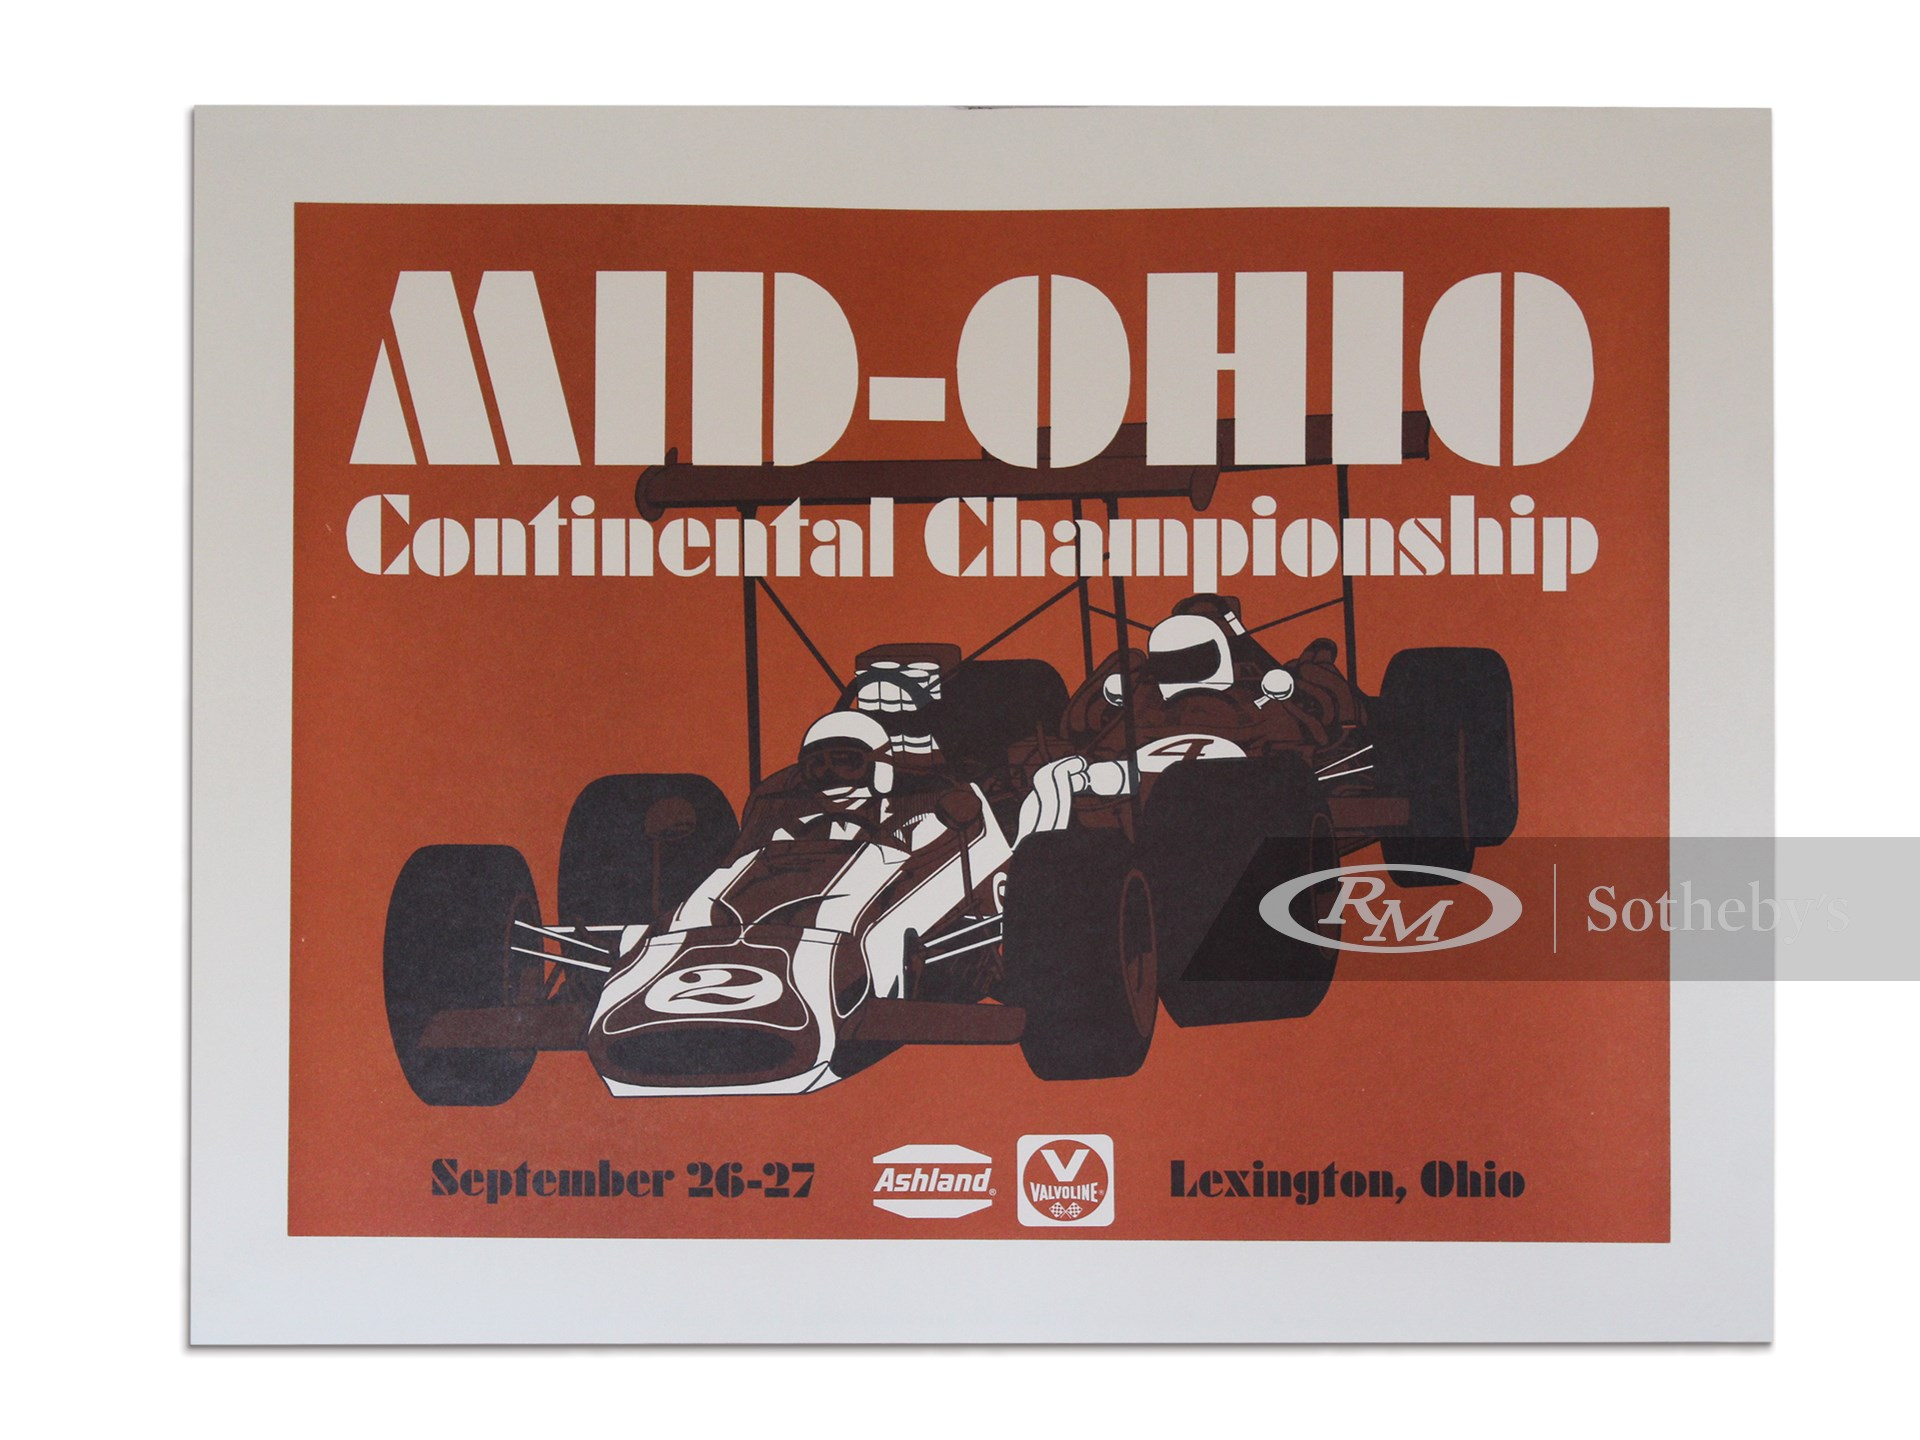 """""""Mid-Ohio Continental Championship September 26-27"""" Vintage Event Poster, ca. 1969 -"""